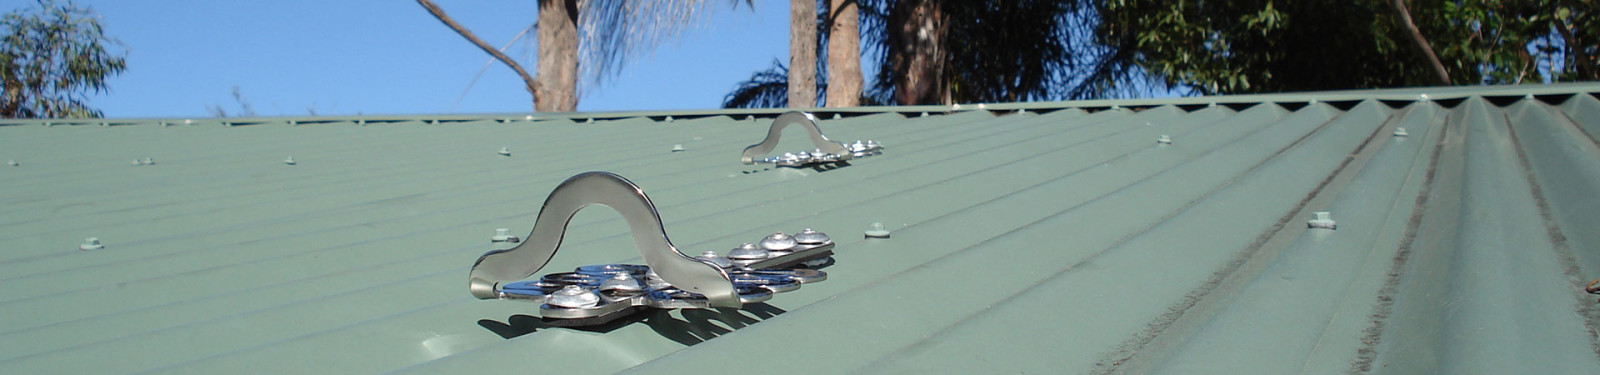 Certify roof anchor points and safety systems